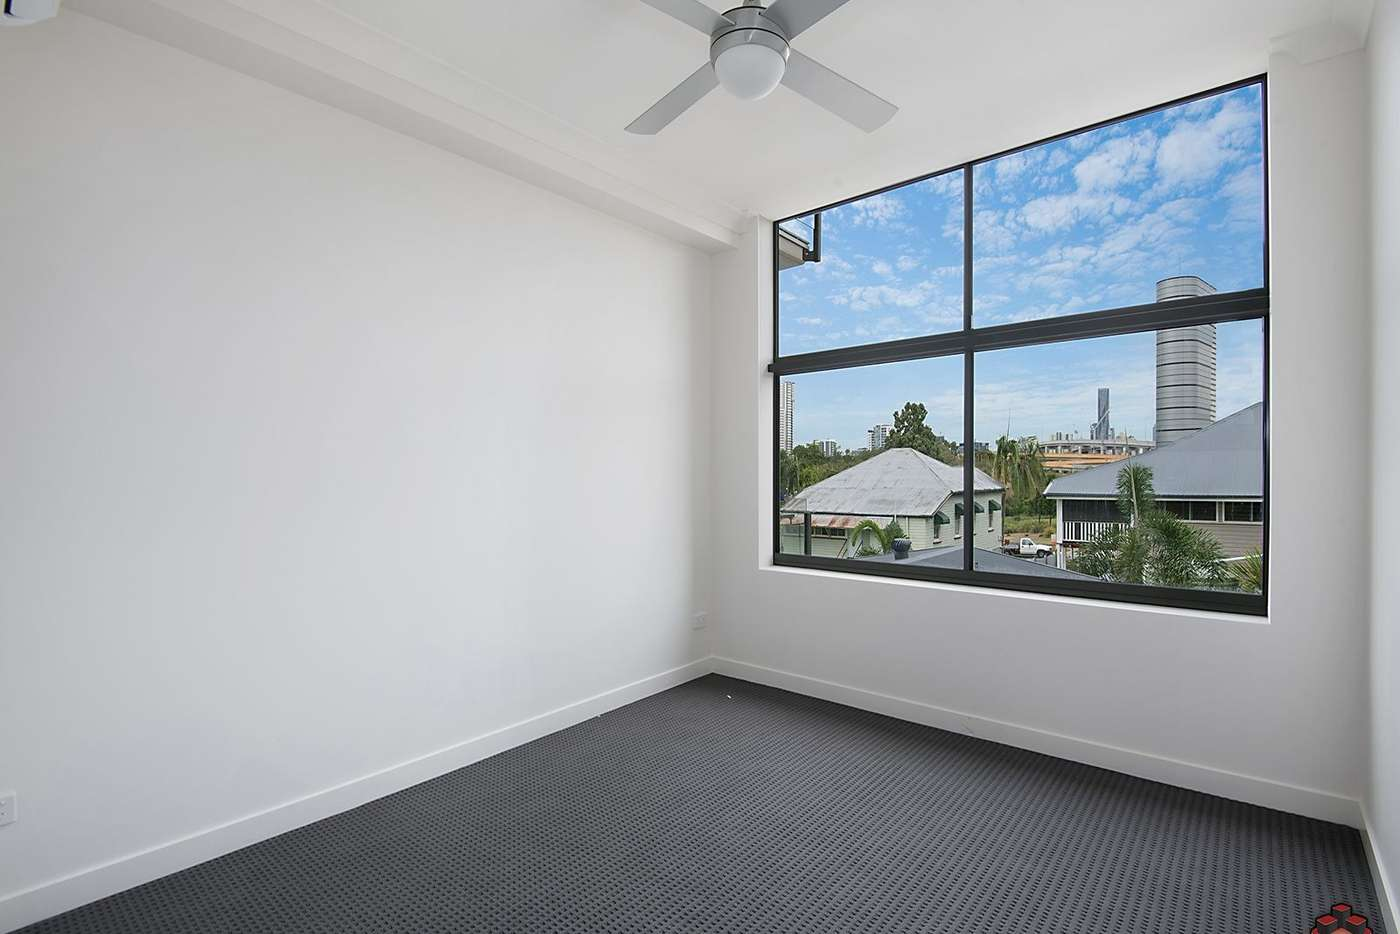 Sixth view of Homely apartment listing, ID:21067702/35 Gallway Street, Windsor QLD 4030